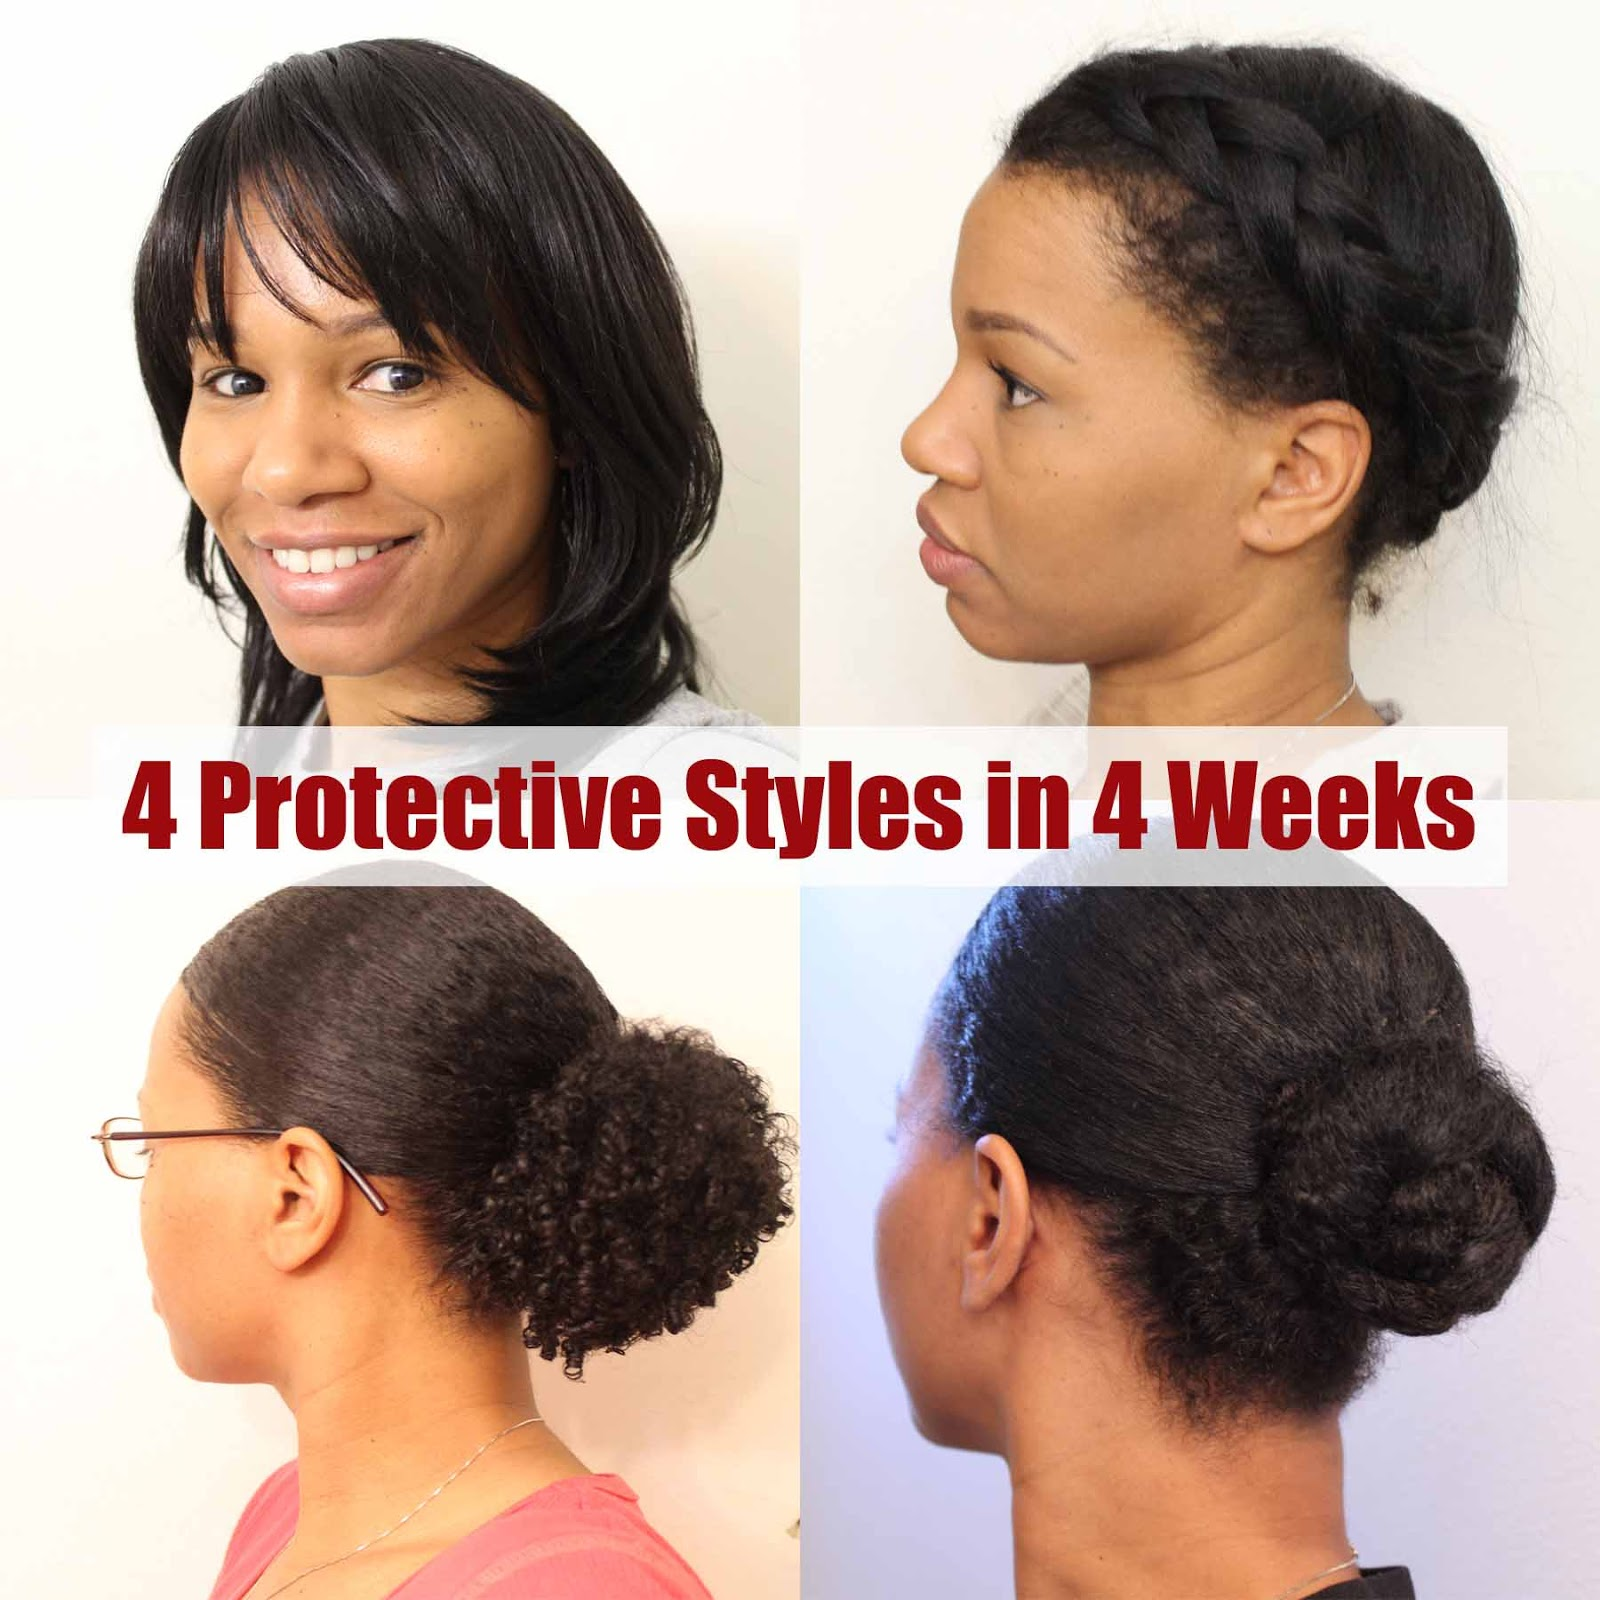 4 Protective Hair Styles In 4 Weeks Curly In Colorado